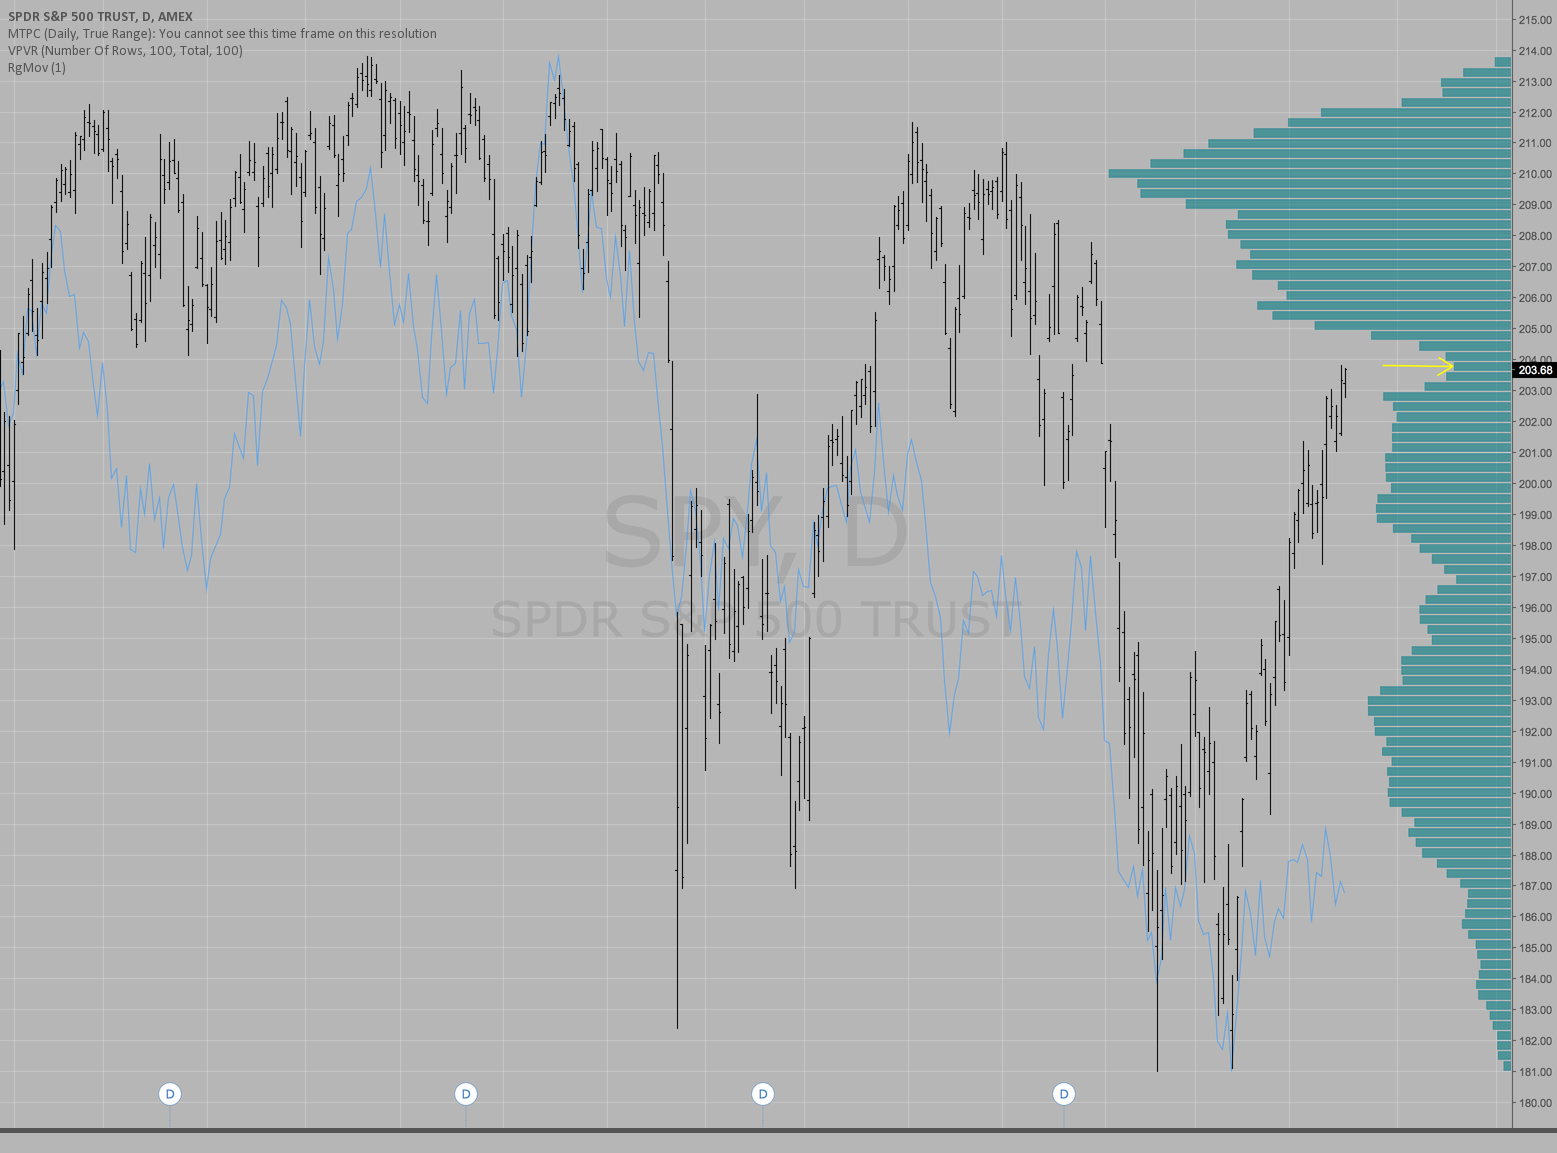 SPY is up to a very important level today (and yesterday)